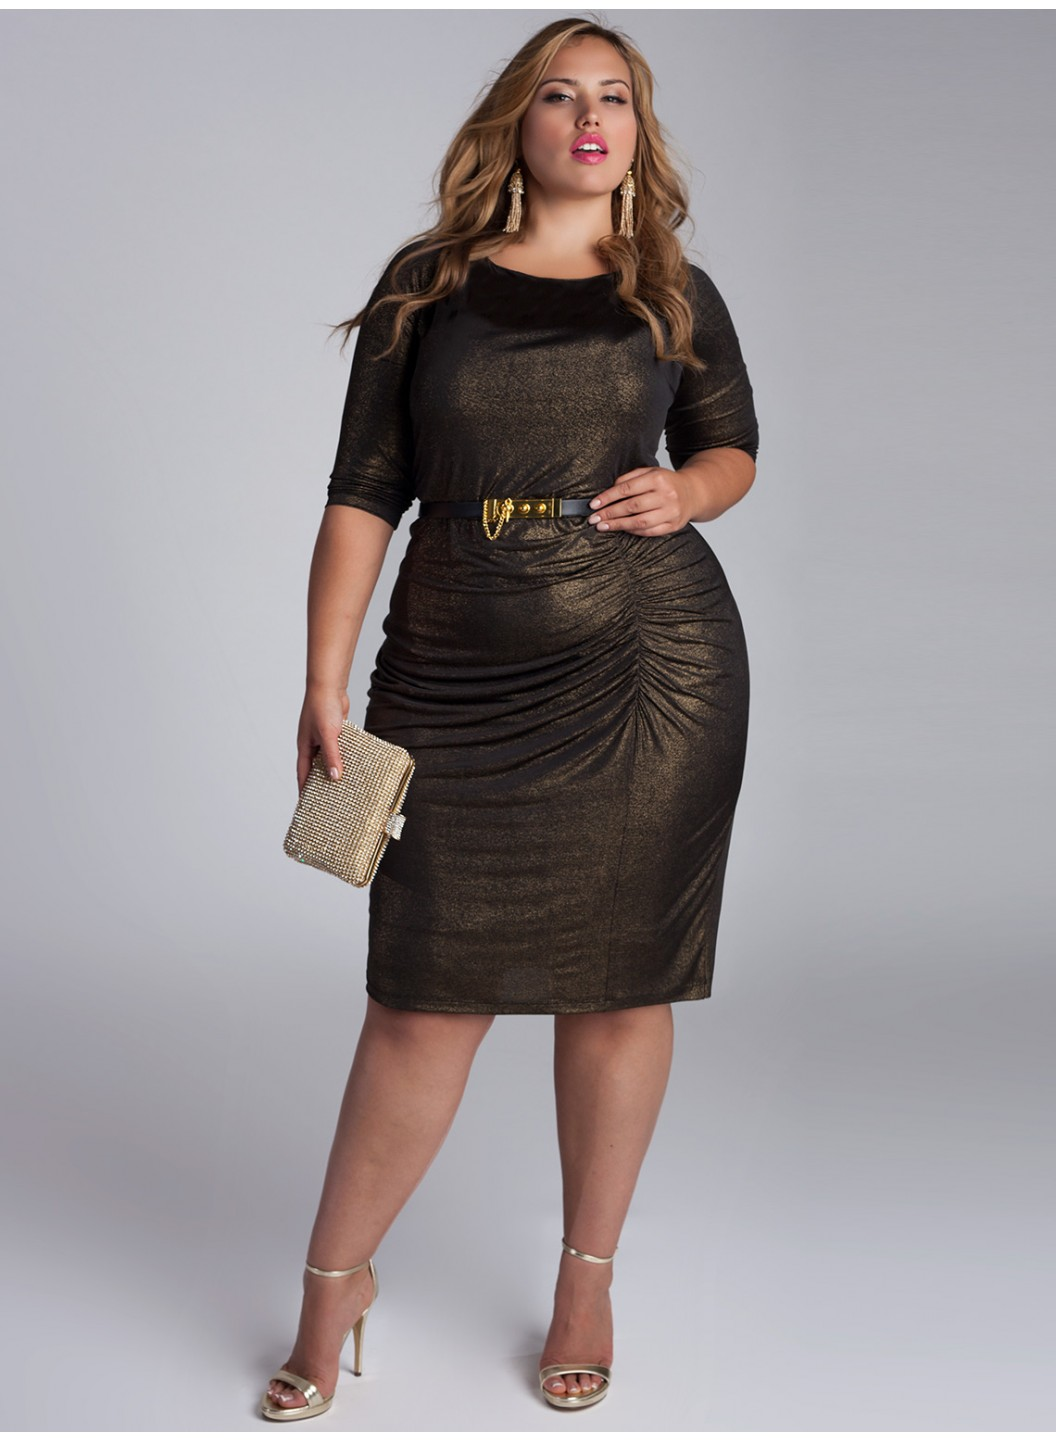 plus-size-cocktail-dresses-nezetta-black-gold-front